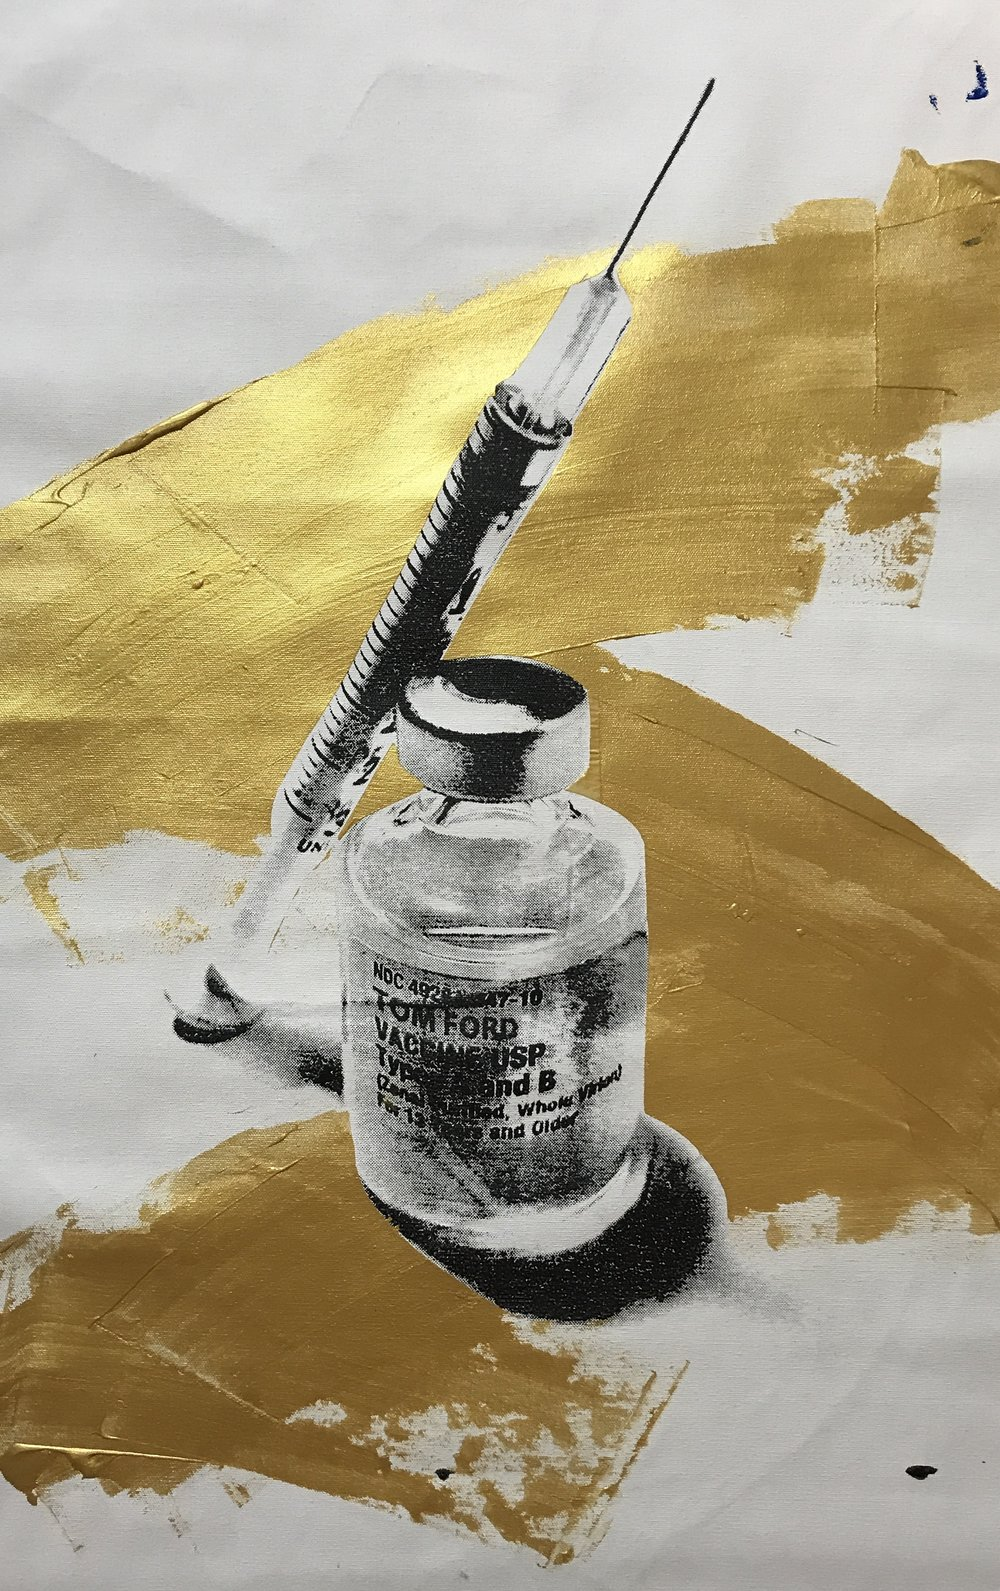 TOM FORD Vaccine  - 25 x 30 Acrylic on Canvas April 18 Buyer Inquiry